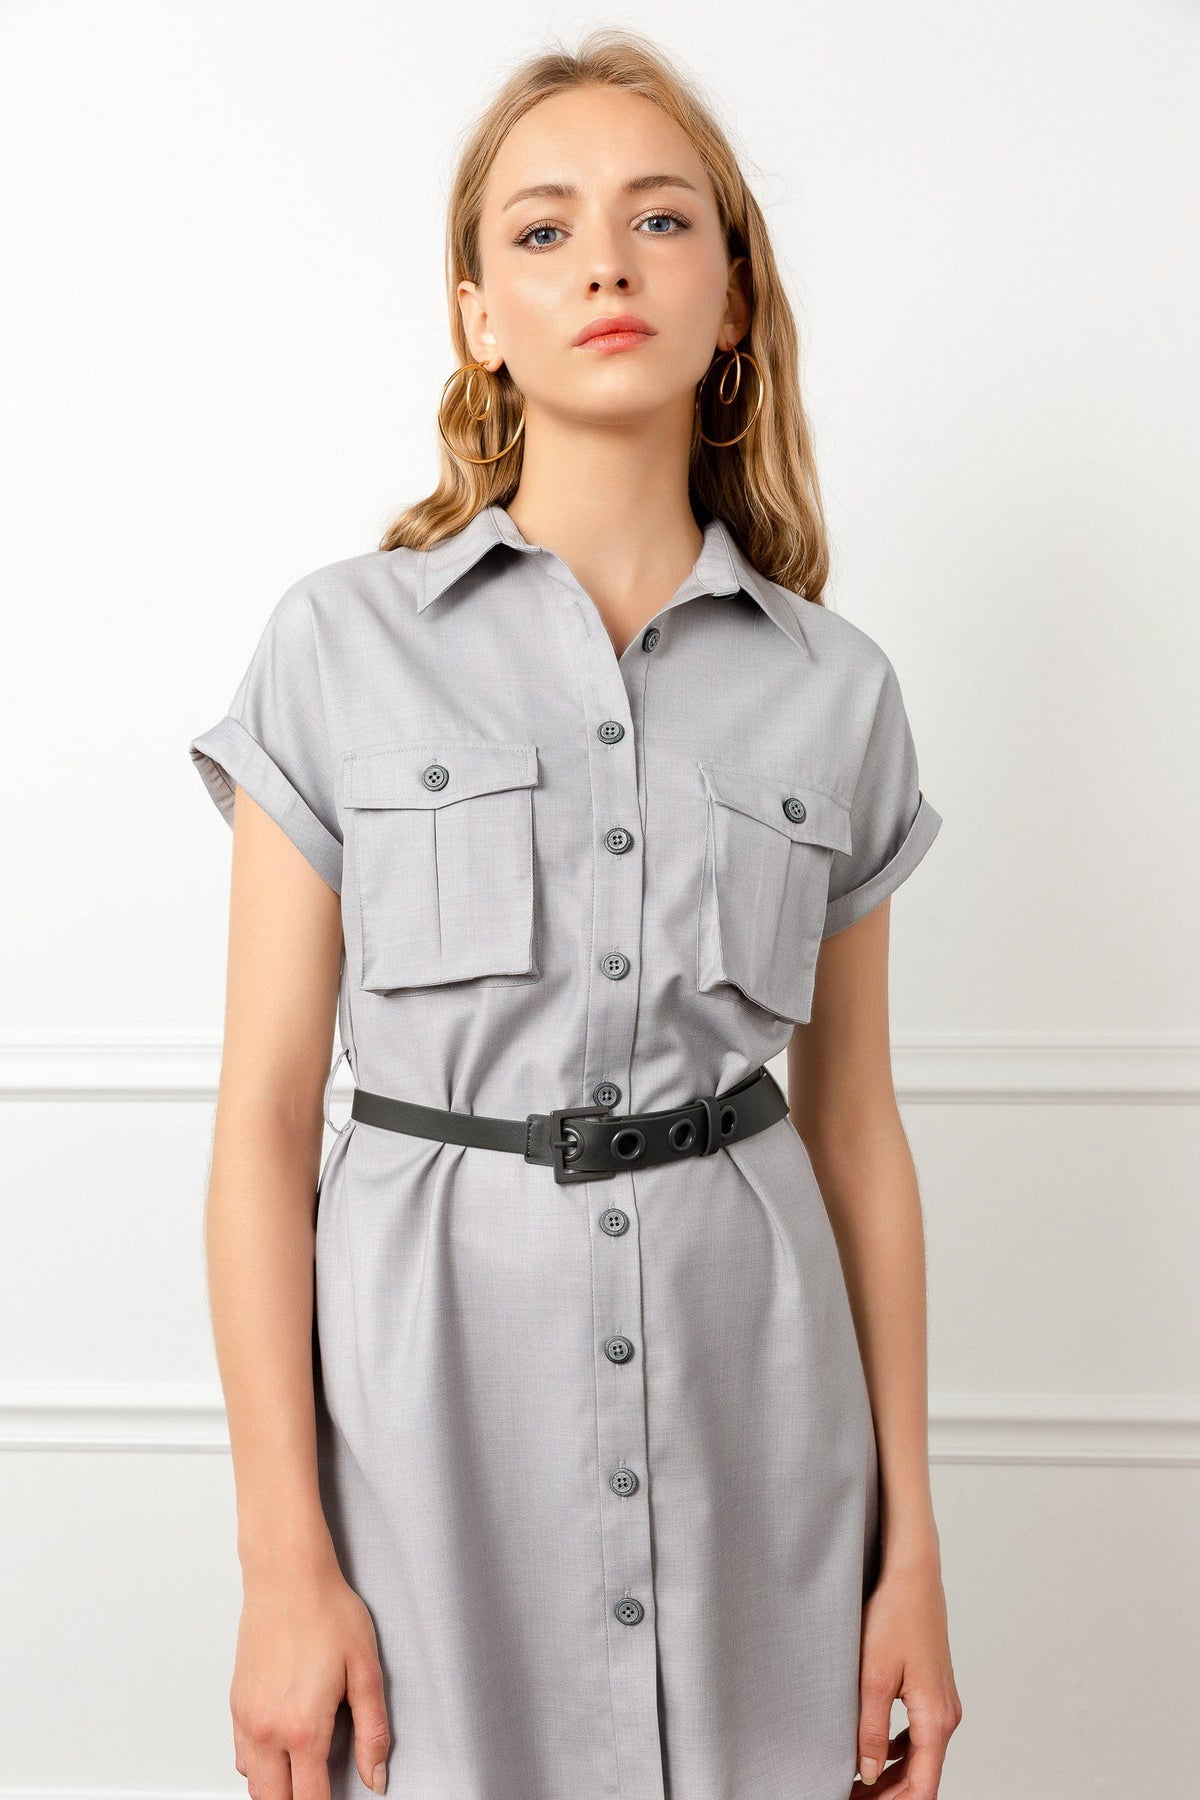 Model in grey Utility Dress Shirt with Belt by J.ING